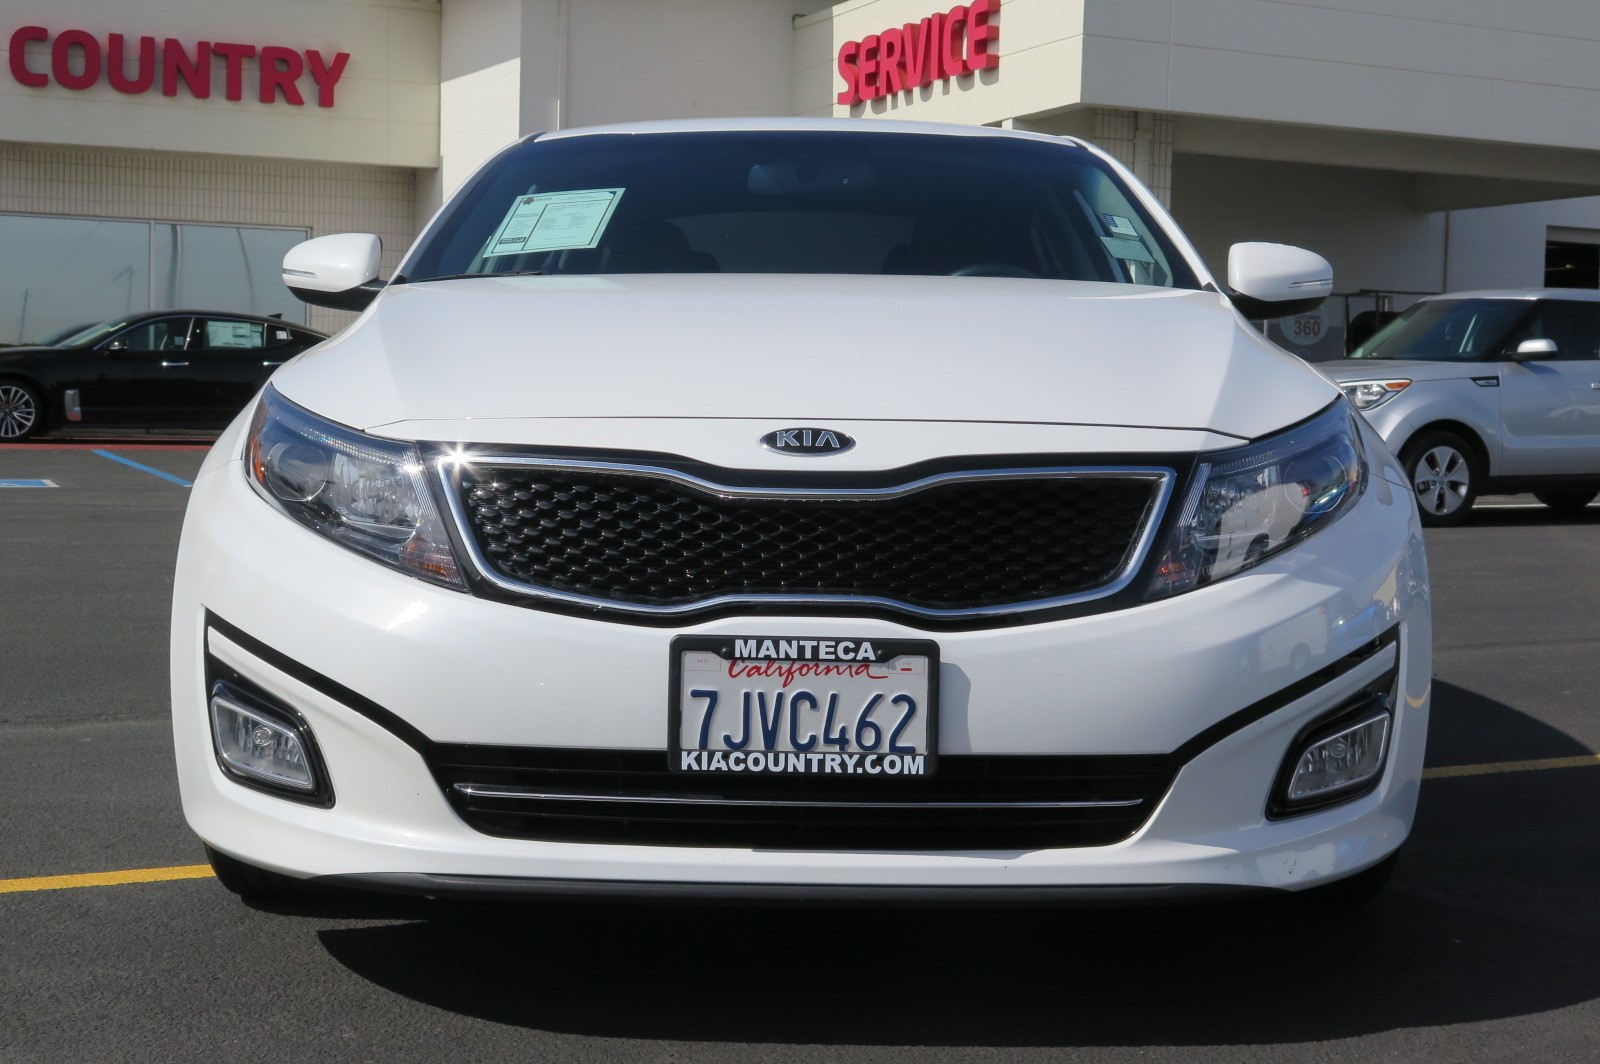 2014 KIA OPTIMA SX SEDAN white black 4-cyl 24 liter automatic certified    siriusxm satelli